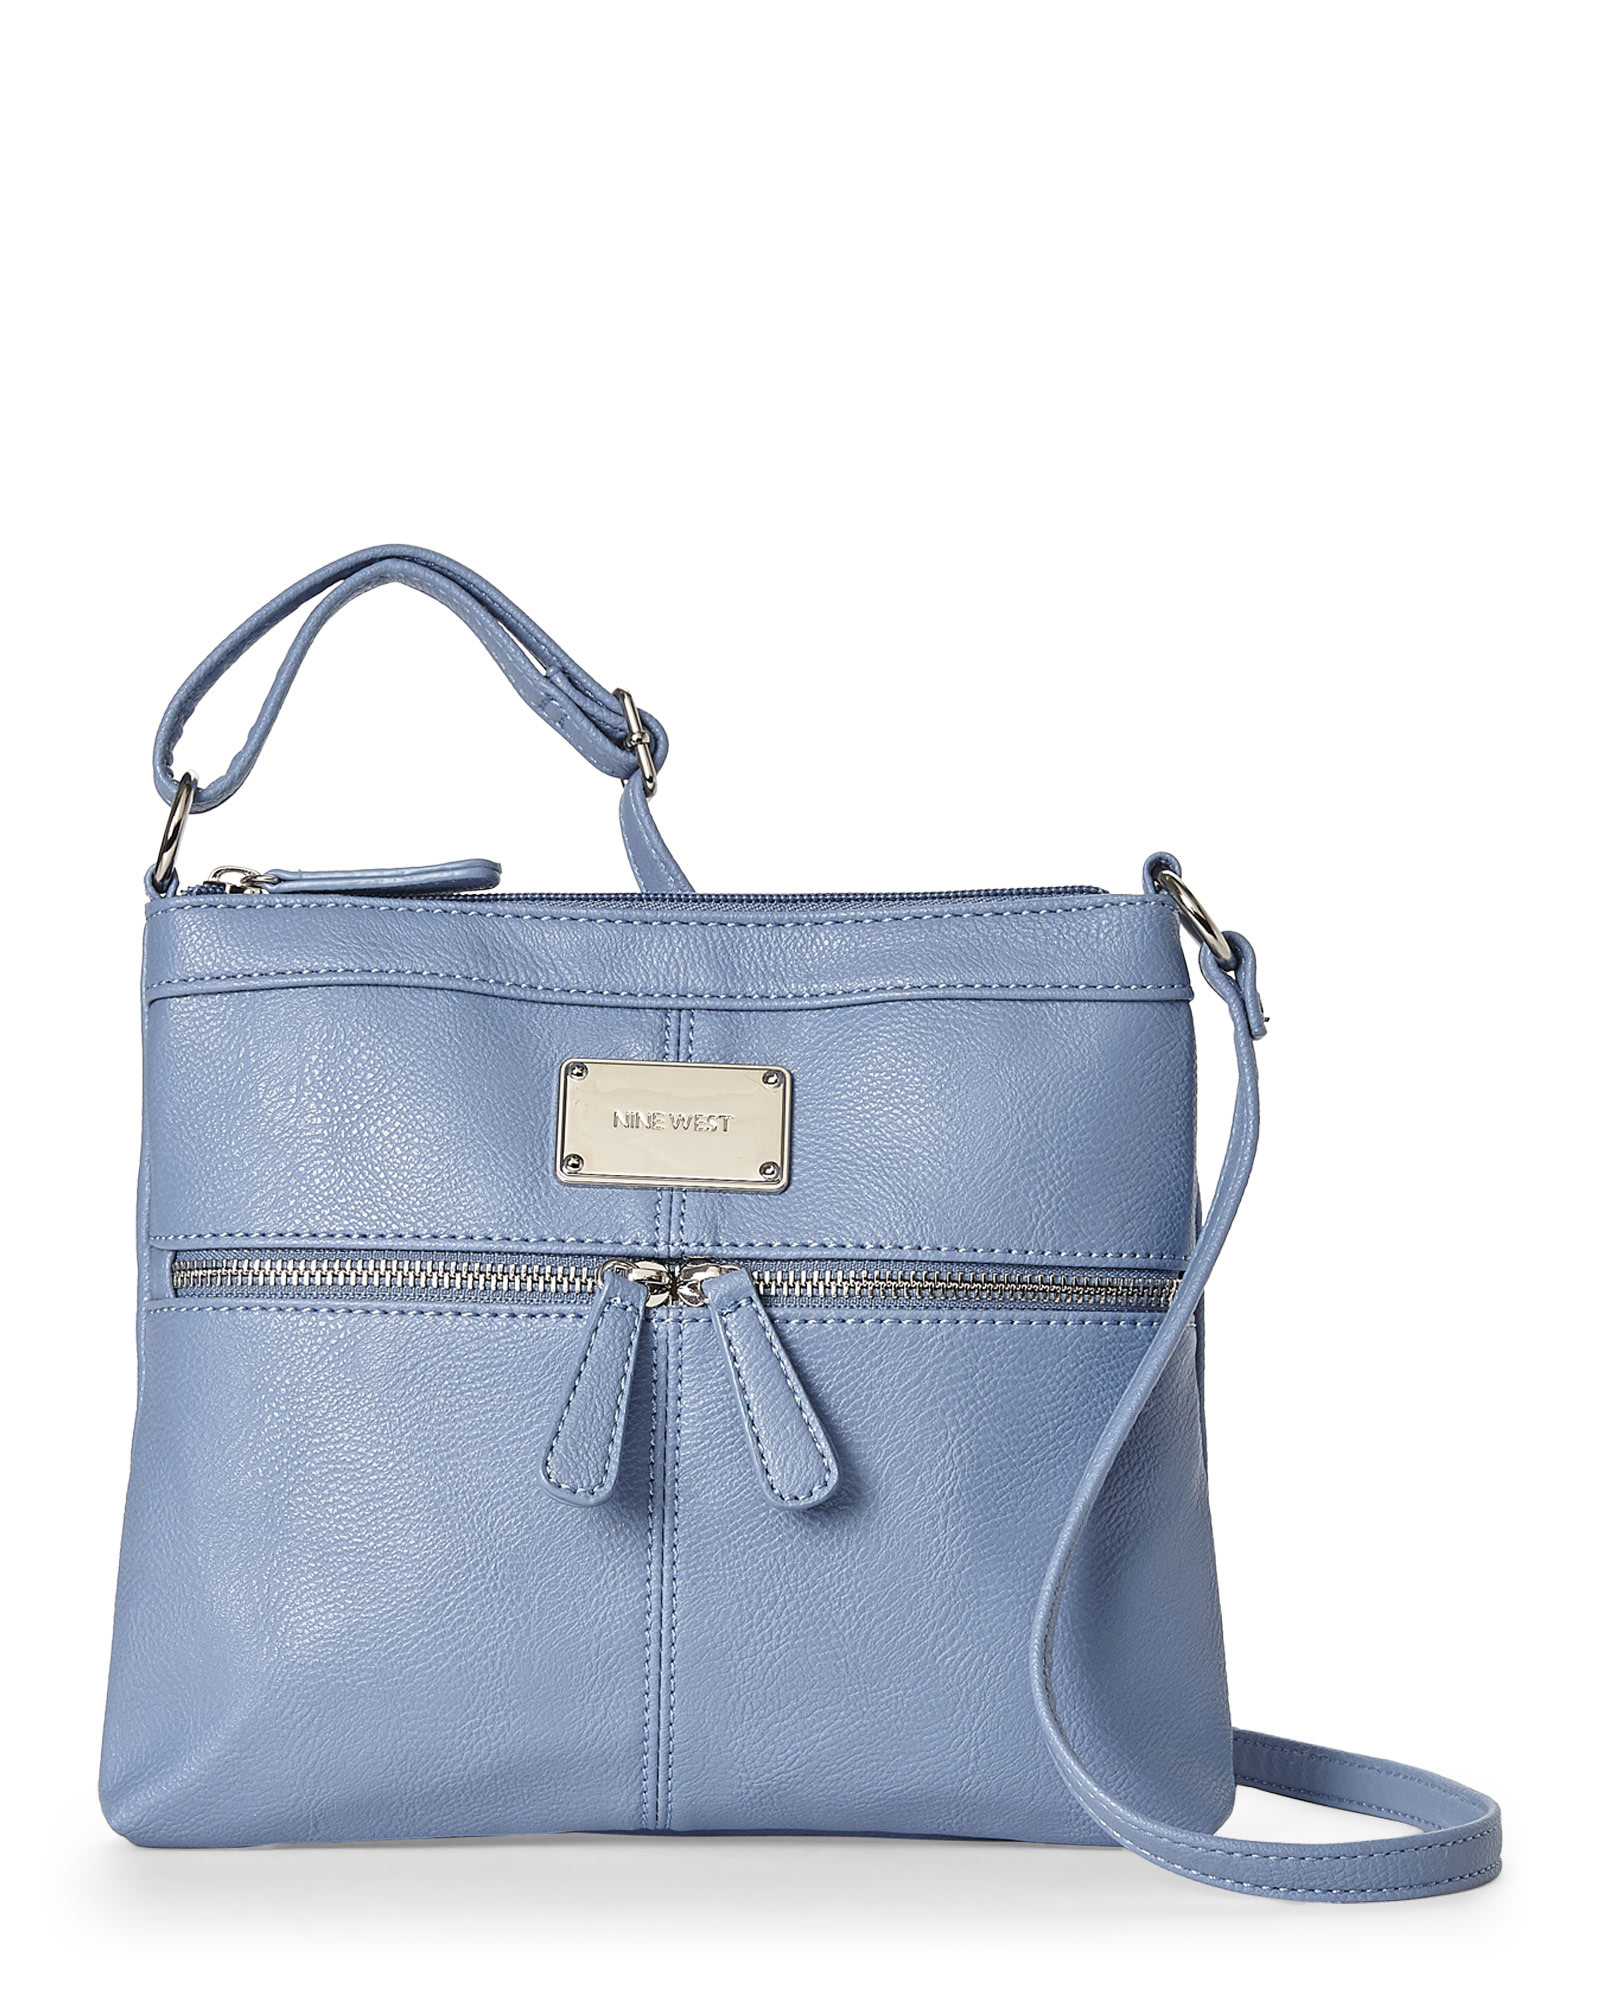 25234da94812 Nine West Blue Sky Encino Crossbody